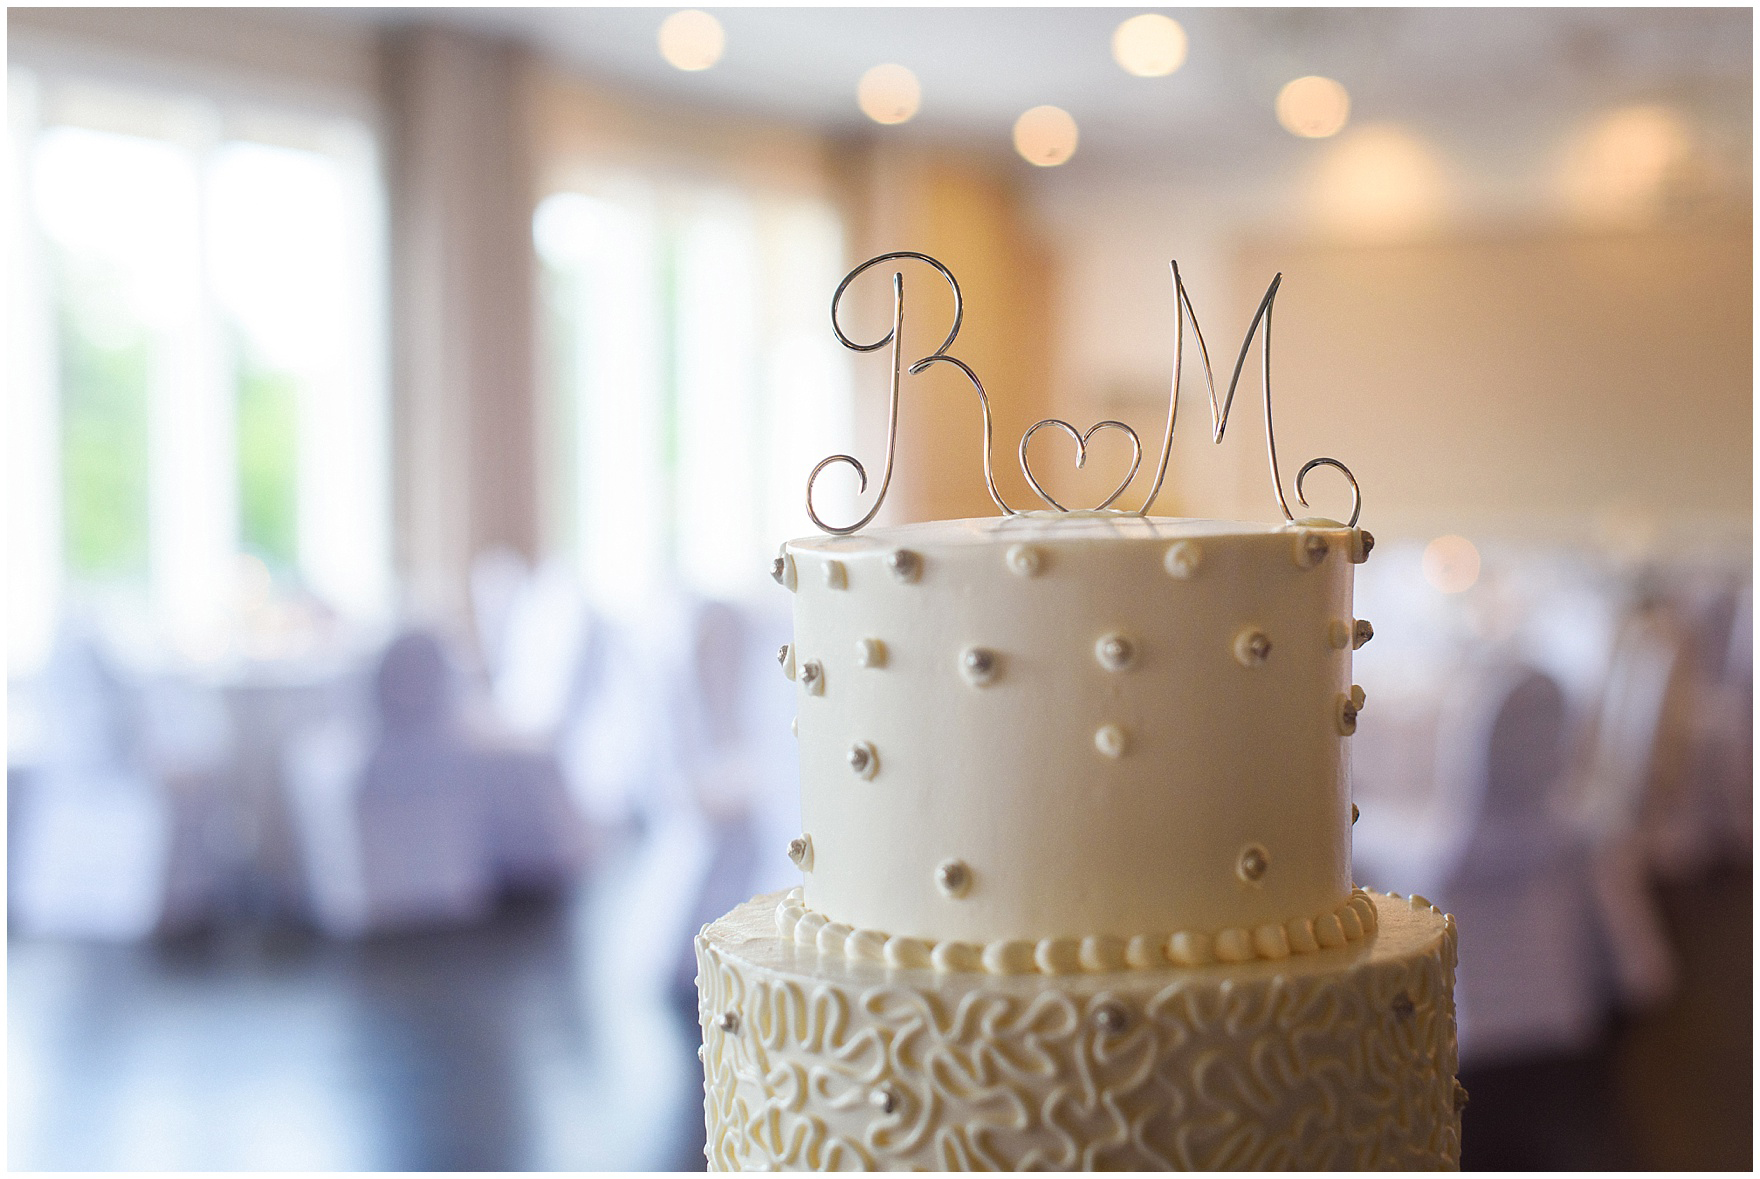 Detail of a cake topper on a wedding cake by Oak Mills Bakery for an Itasca Country Club Illinois wedding.